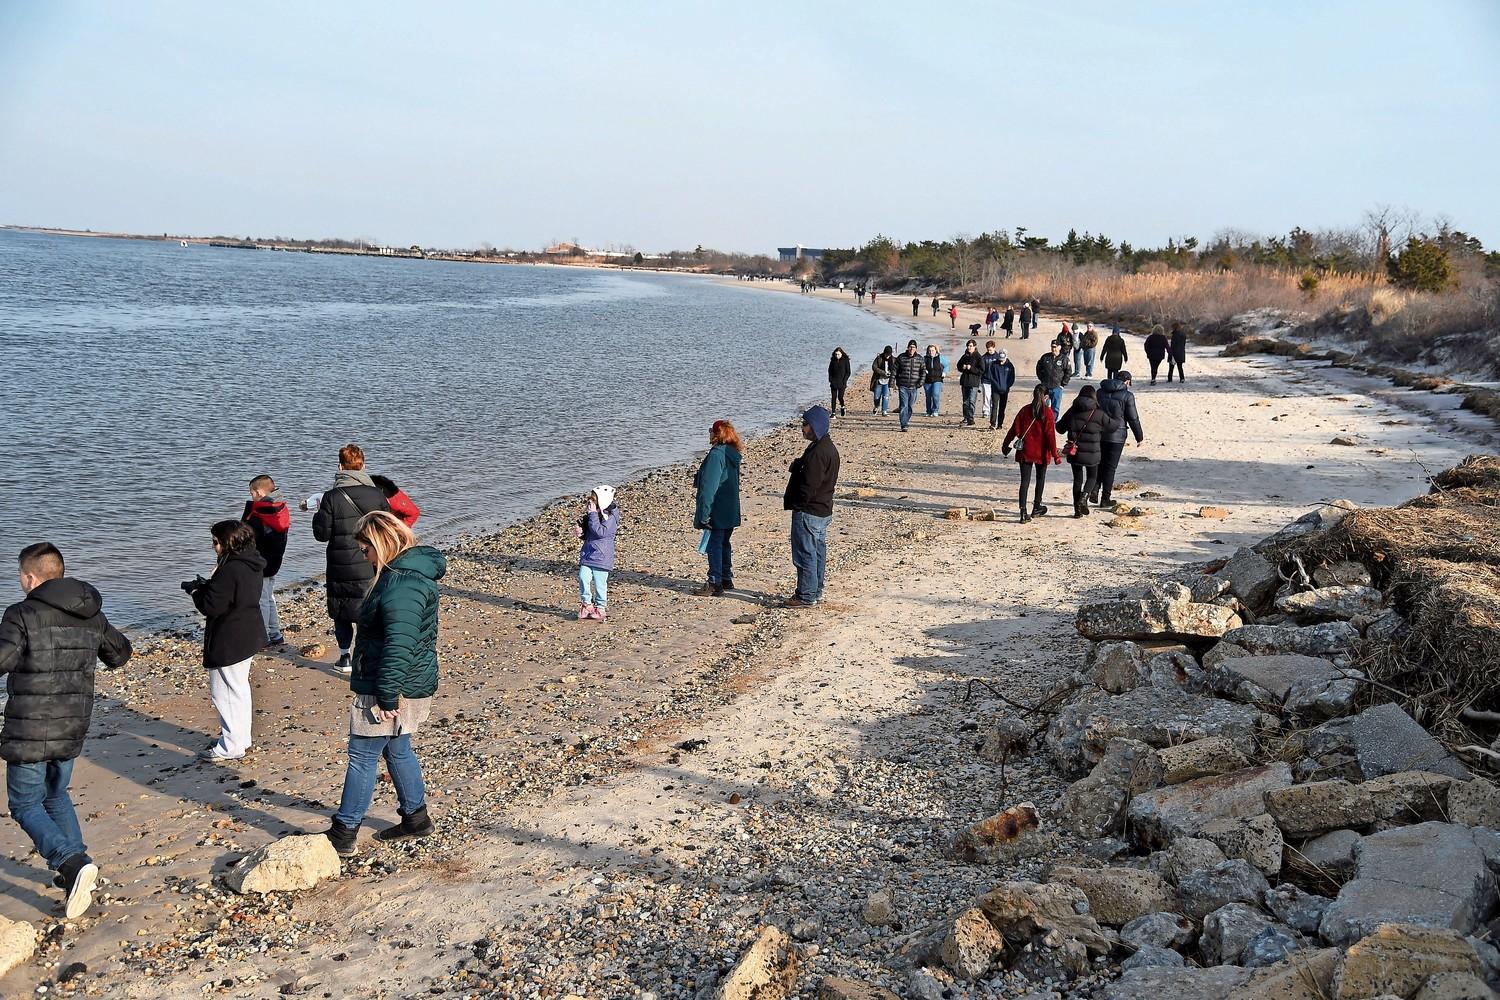 The seal tours at Jones Beach State Park attract people from across Long Island.